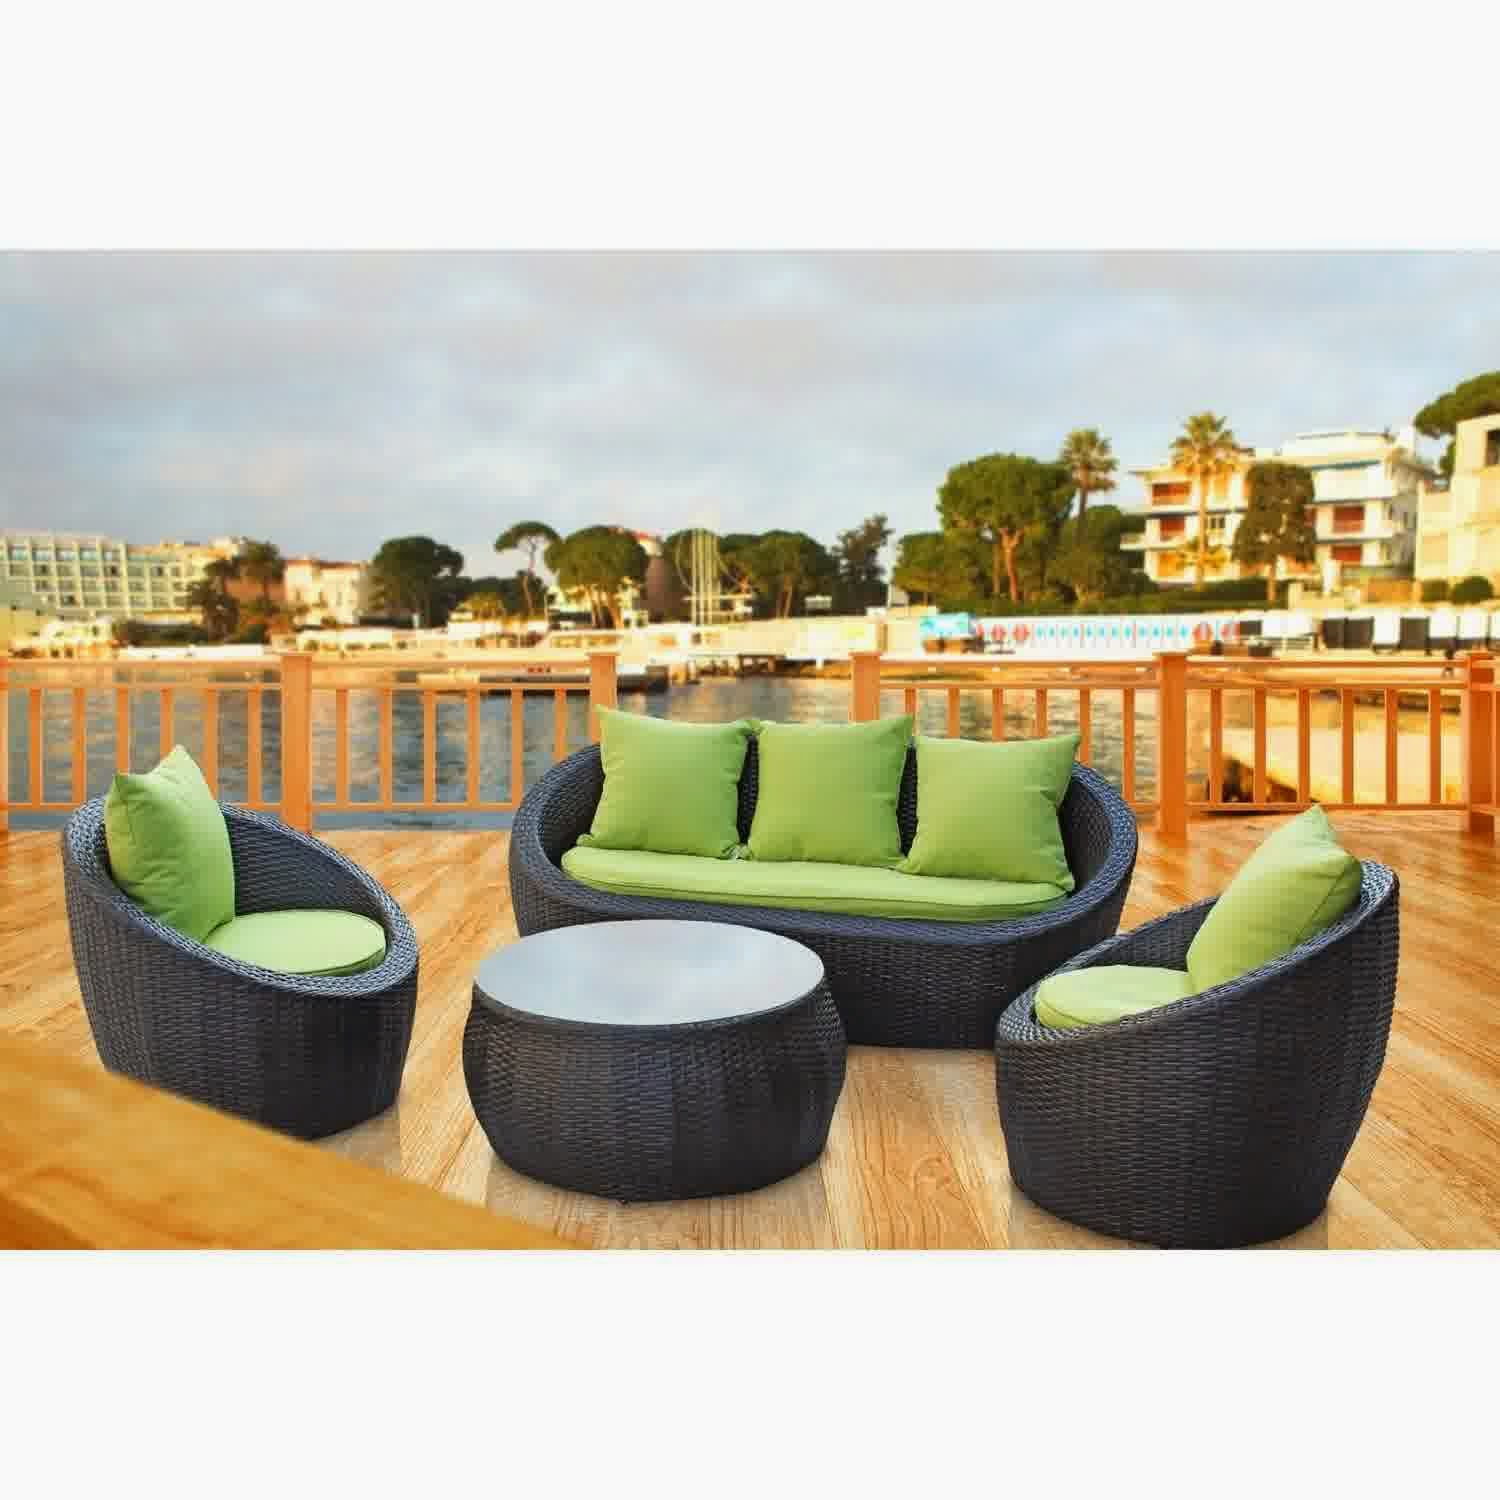 LexMod Avo Outdoor Wicker Patio 4 Piece Sofa Set in Brown with Green Cushions